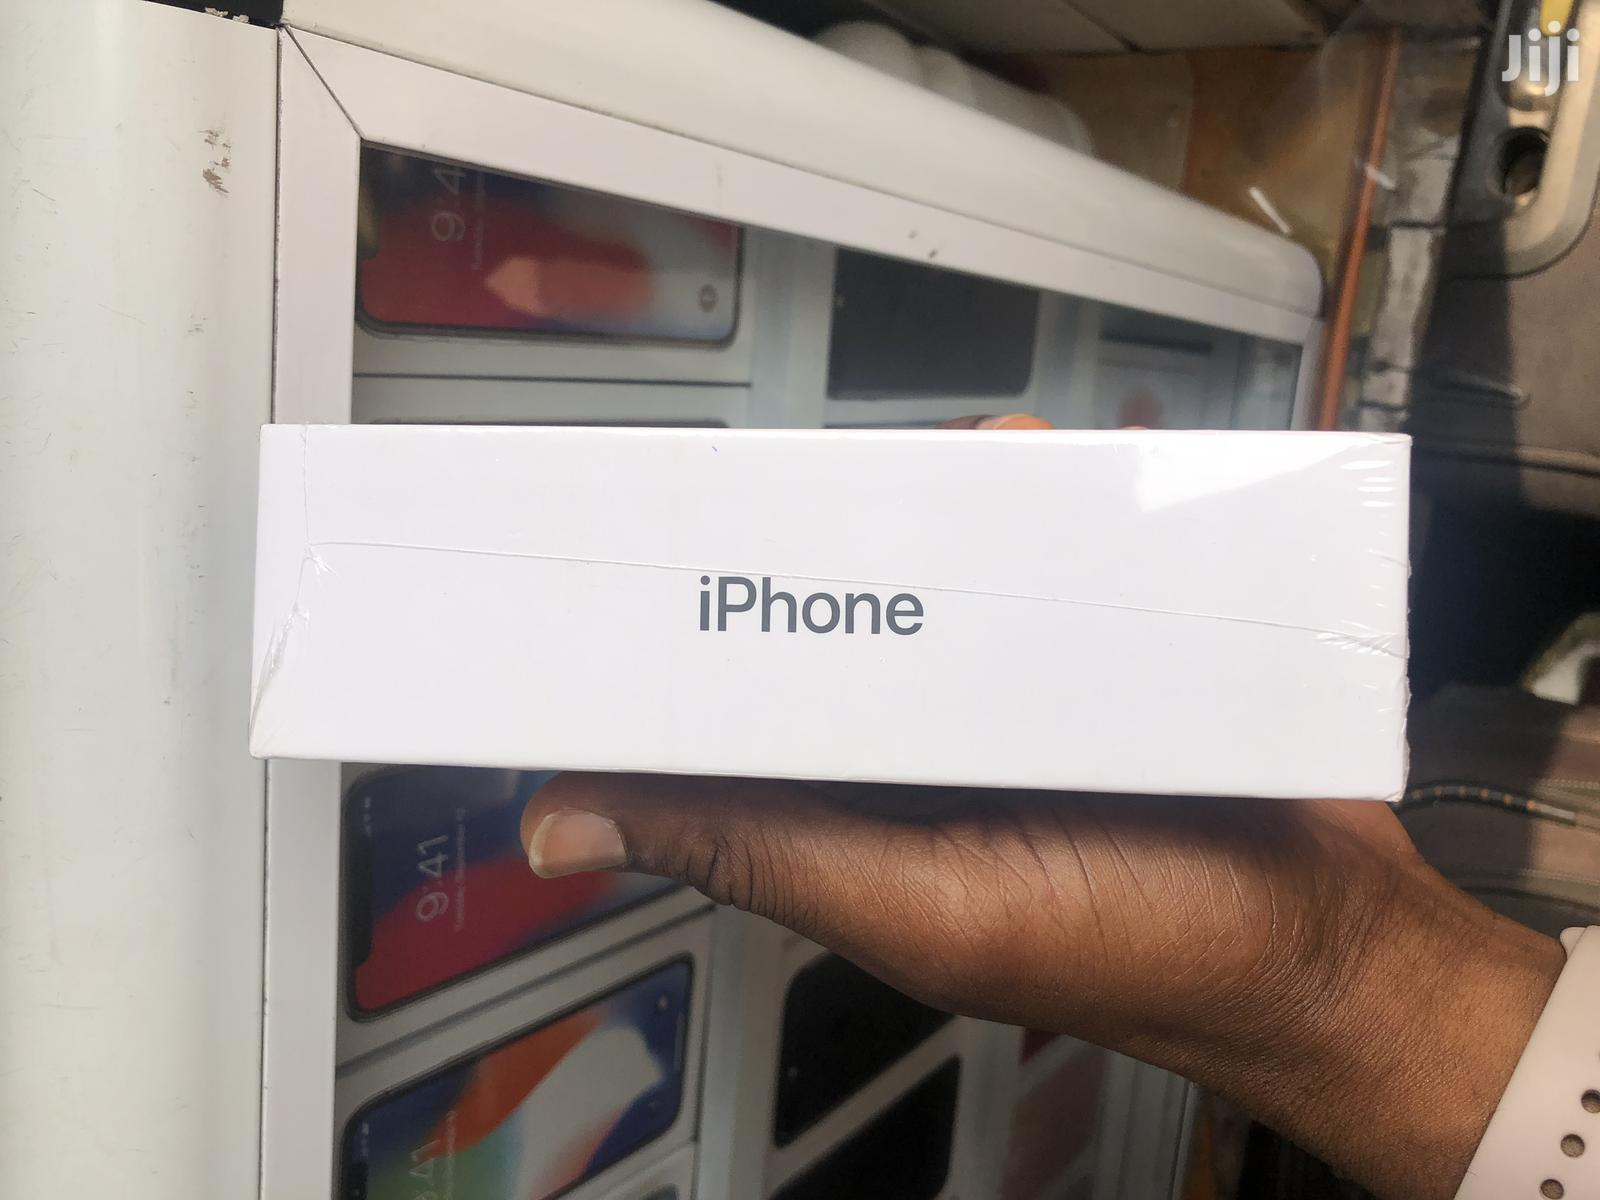 New Apple iPhone X 256 GB   Mobile Phones for sale in Lartebiokorshie, Greater Accra, Ghana